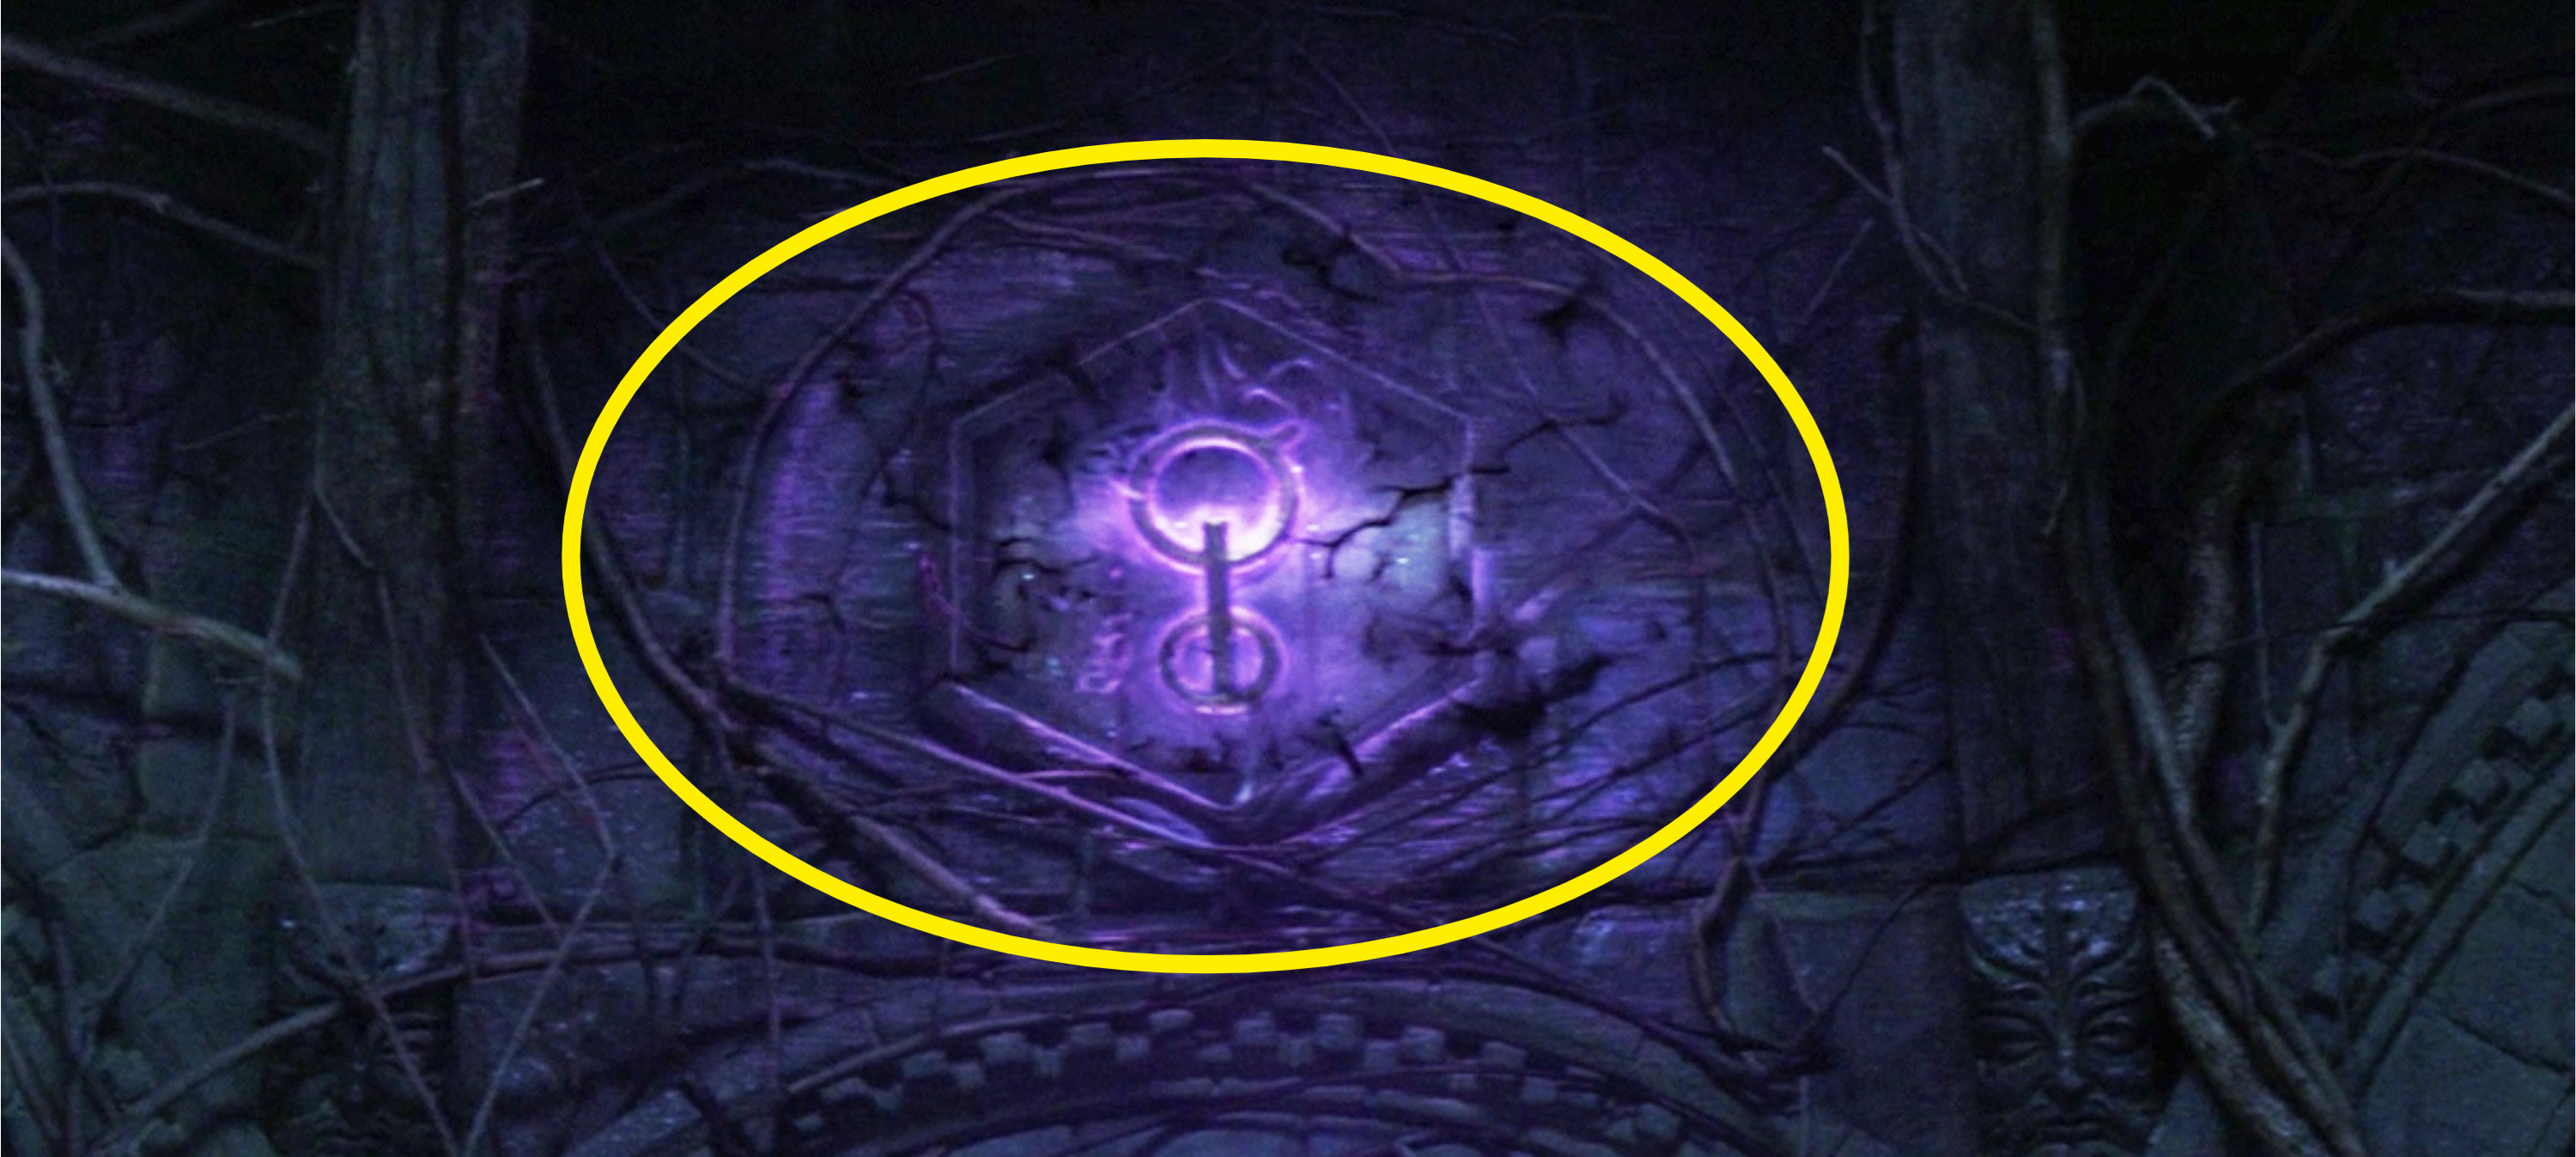 A purple rune inside a hexagon on the wall